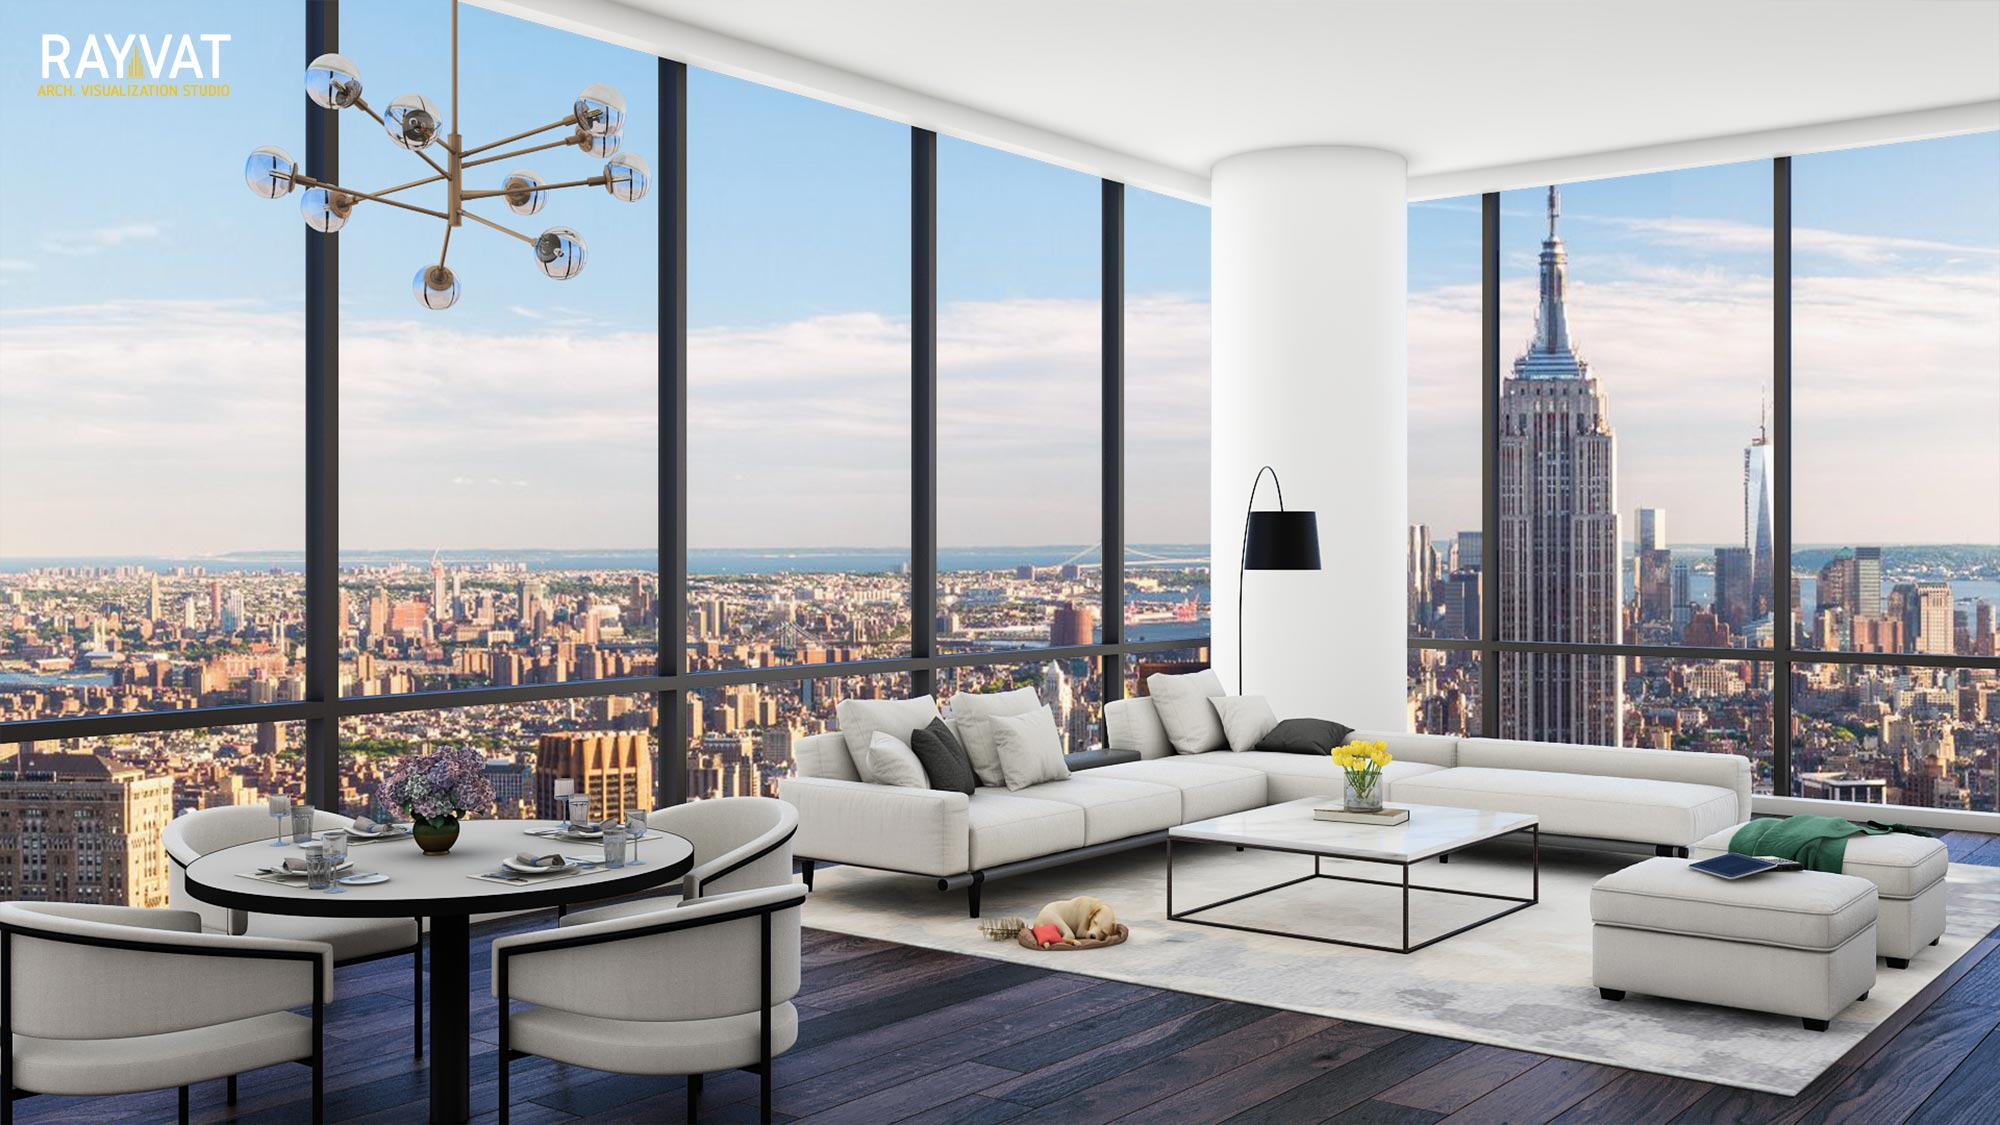 Make a Stunning Impact at Design Presentations with Living Room CGI!